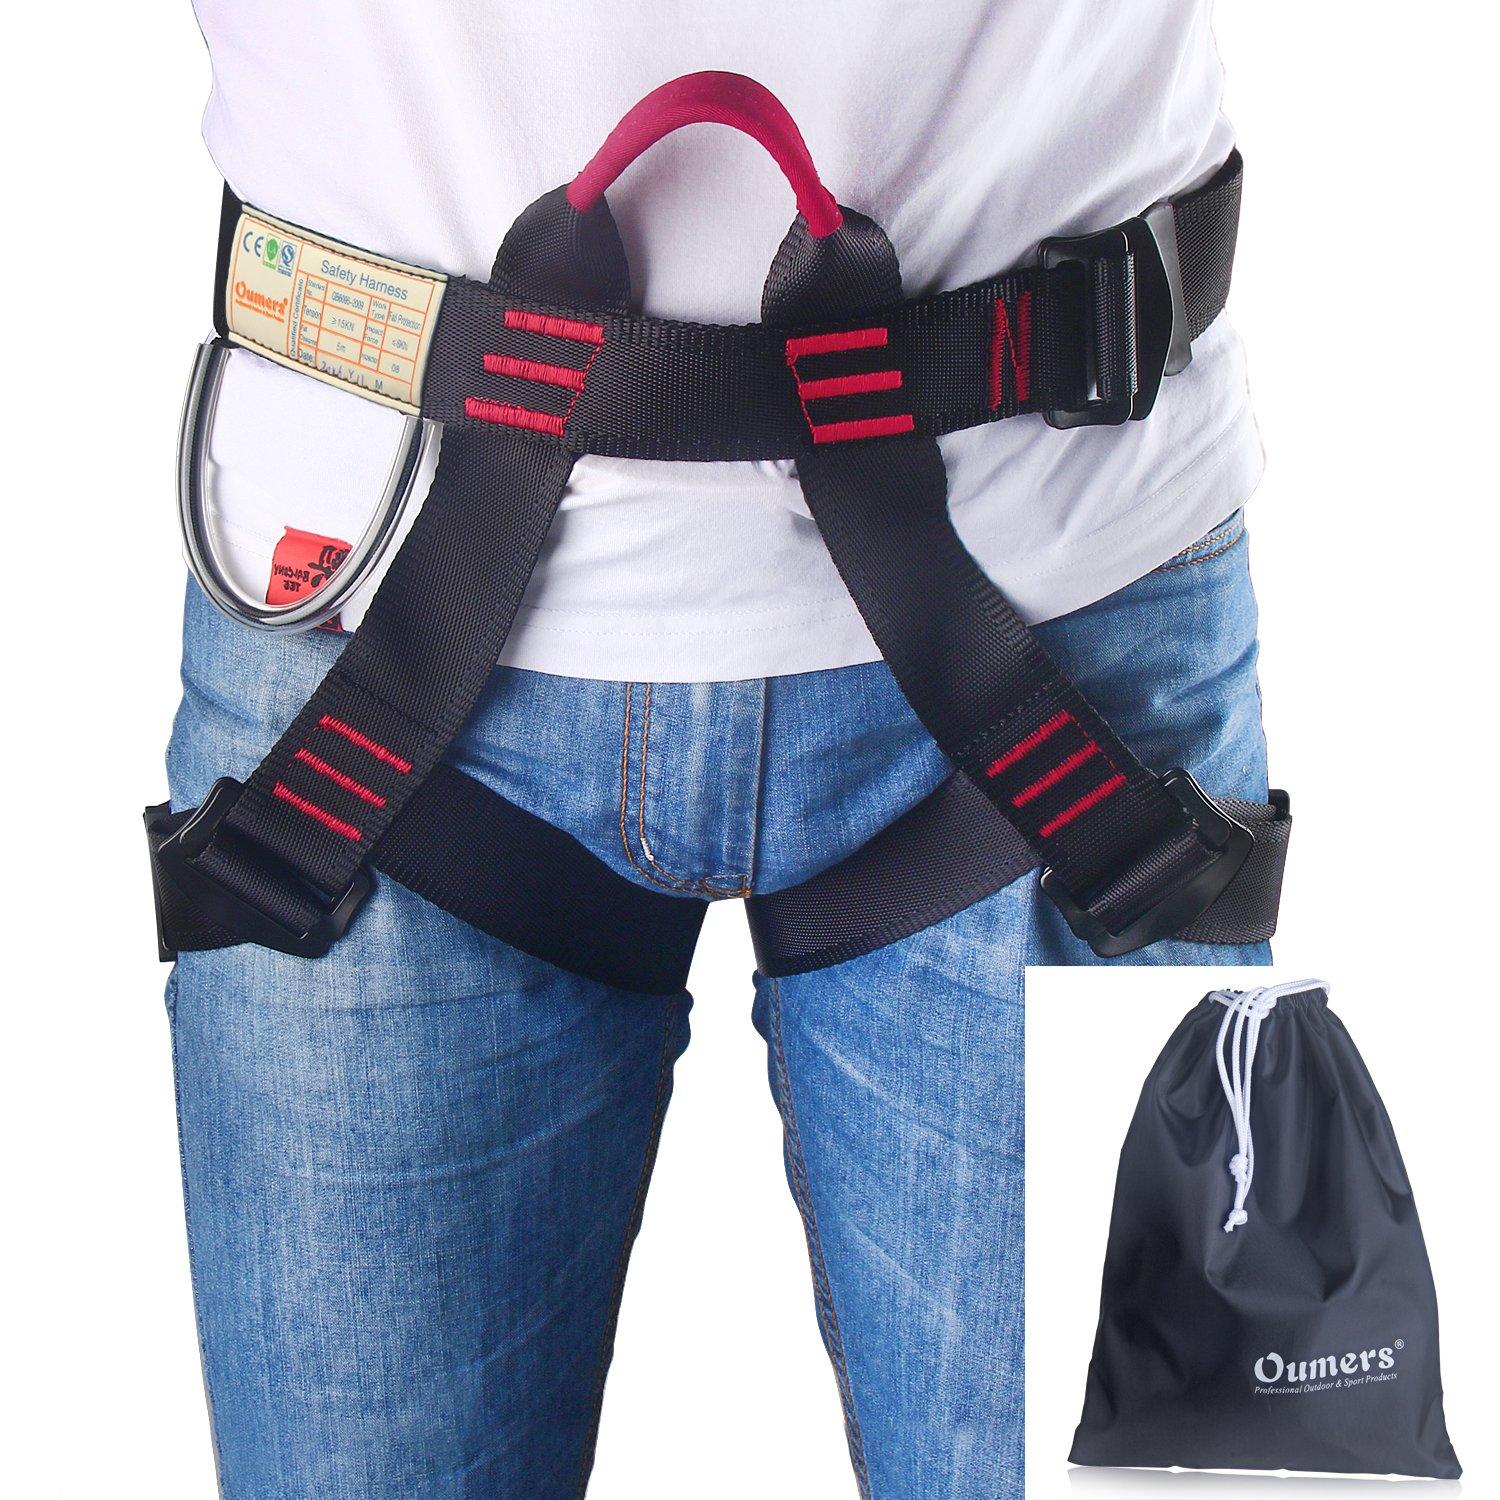 Oumers Climbing Harness, Safe Seat Belts For Mountaineering Outward Band Fire Rescue Working on the Higher Level Caving Rock Climbing Rappelling Equip, Women Man Child Half Body Guide Harness